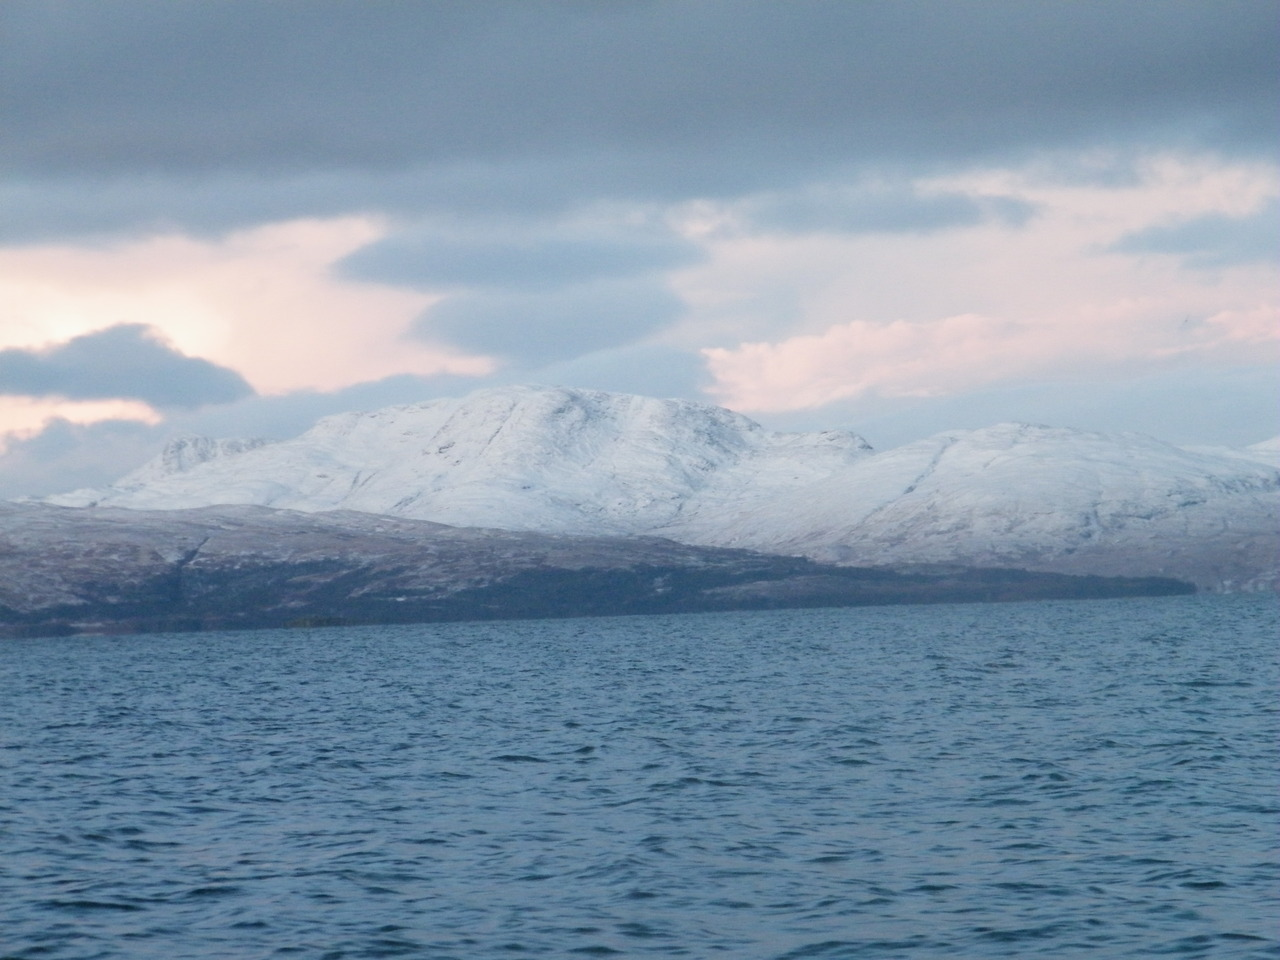 Mull covered in snow